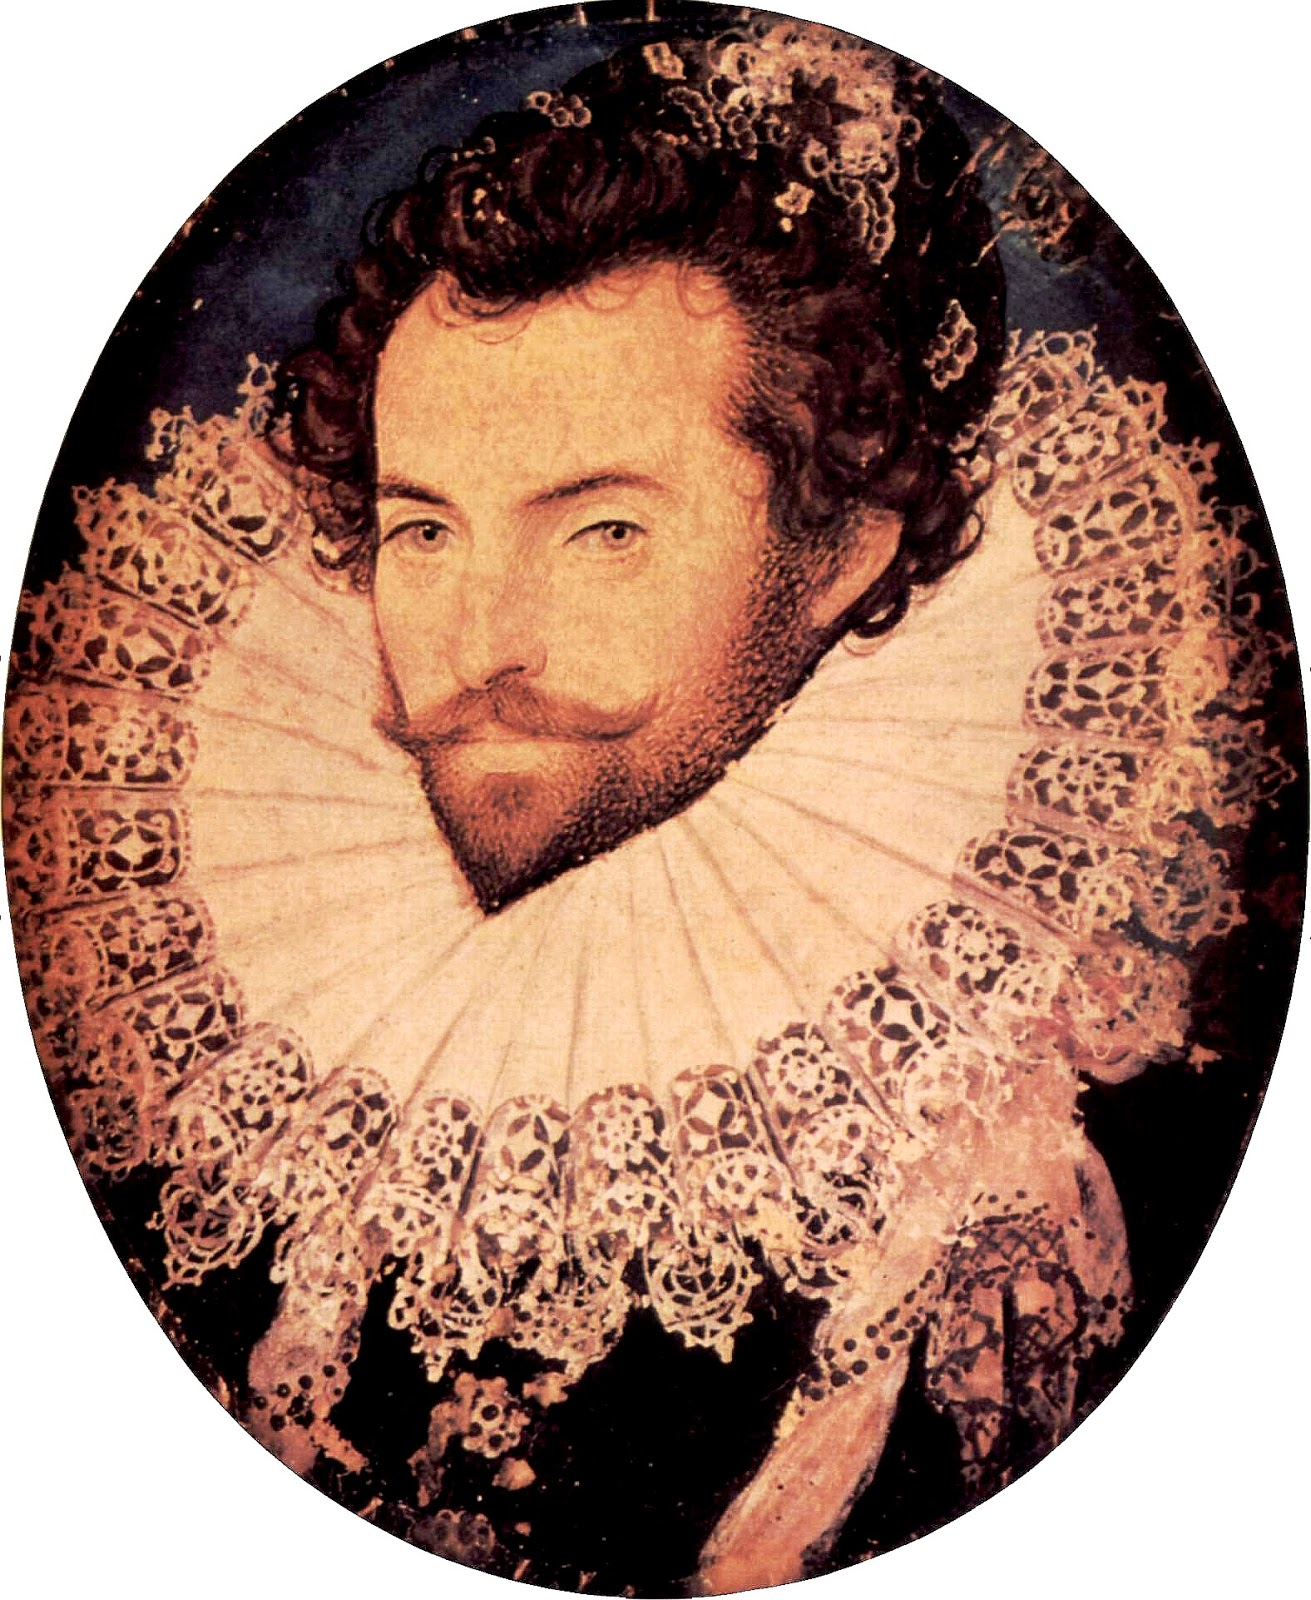 sir walter raleigh relationship with queen elizabeth